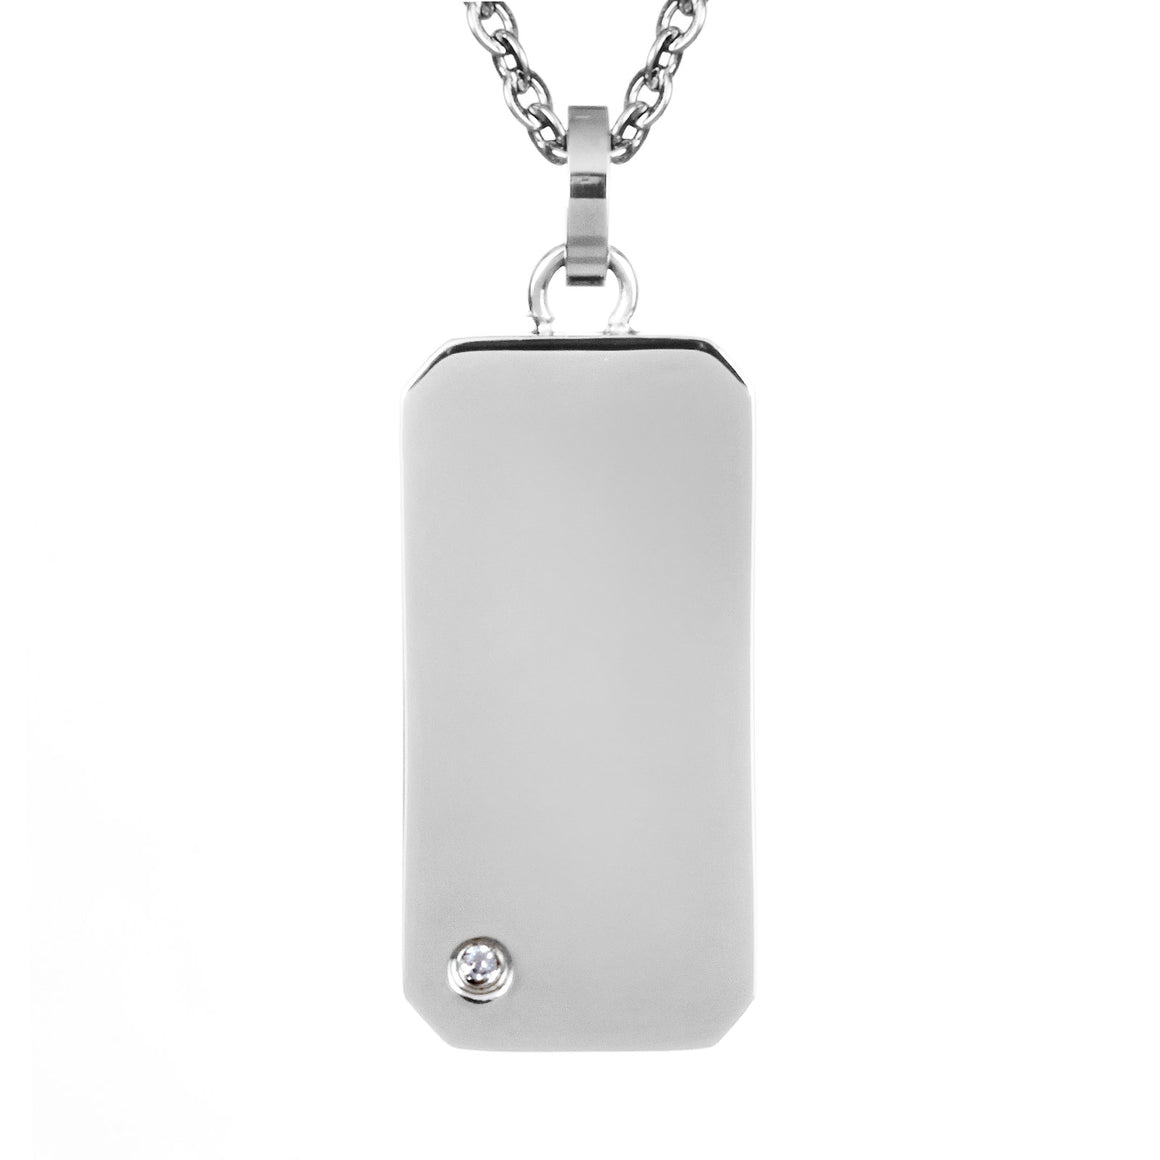 Cubic Zirconia Engravable Mini Dog Tag Best Friend Pendant Stainless Steel Necklace - 18""